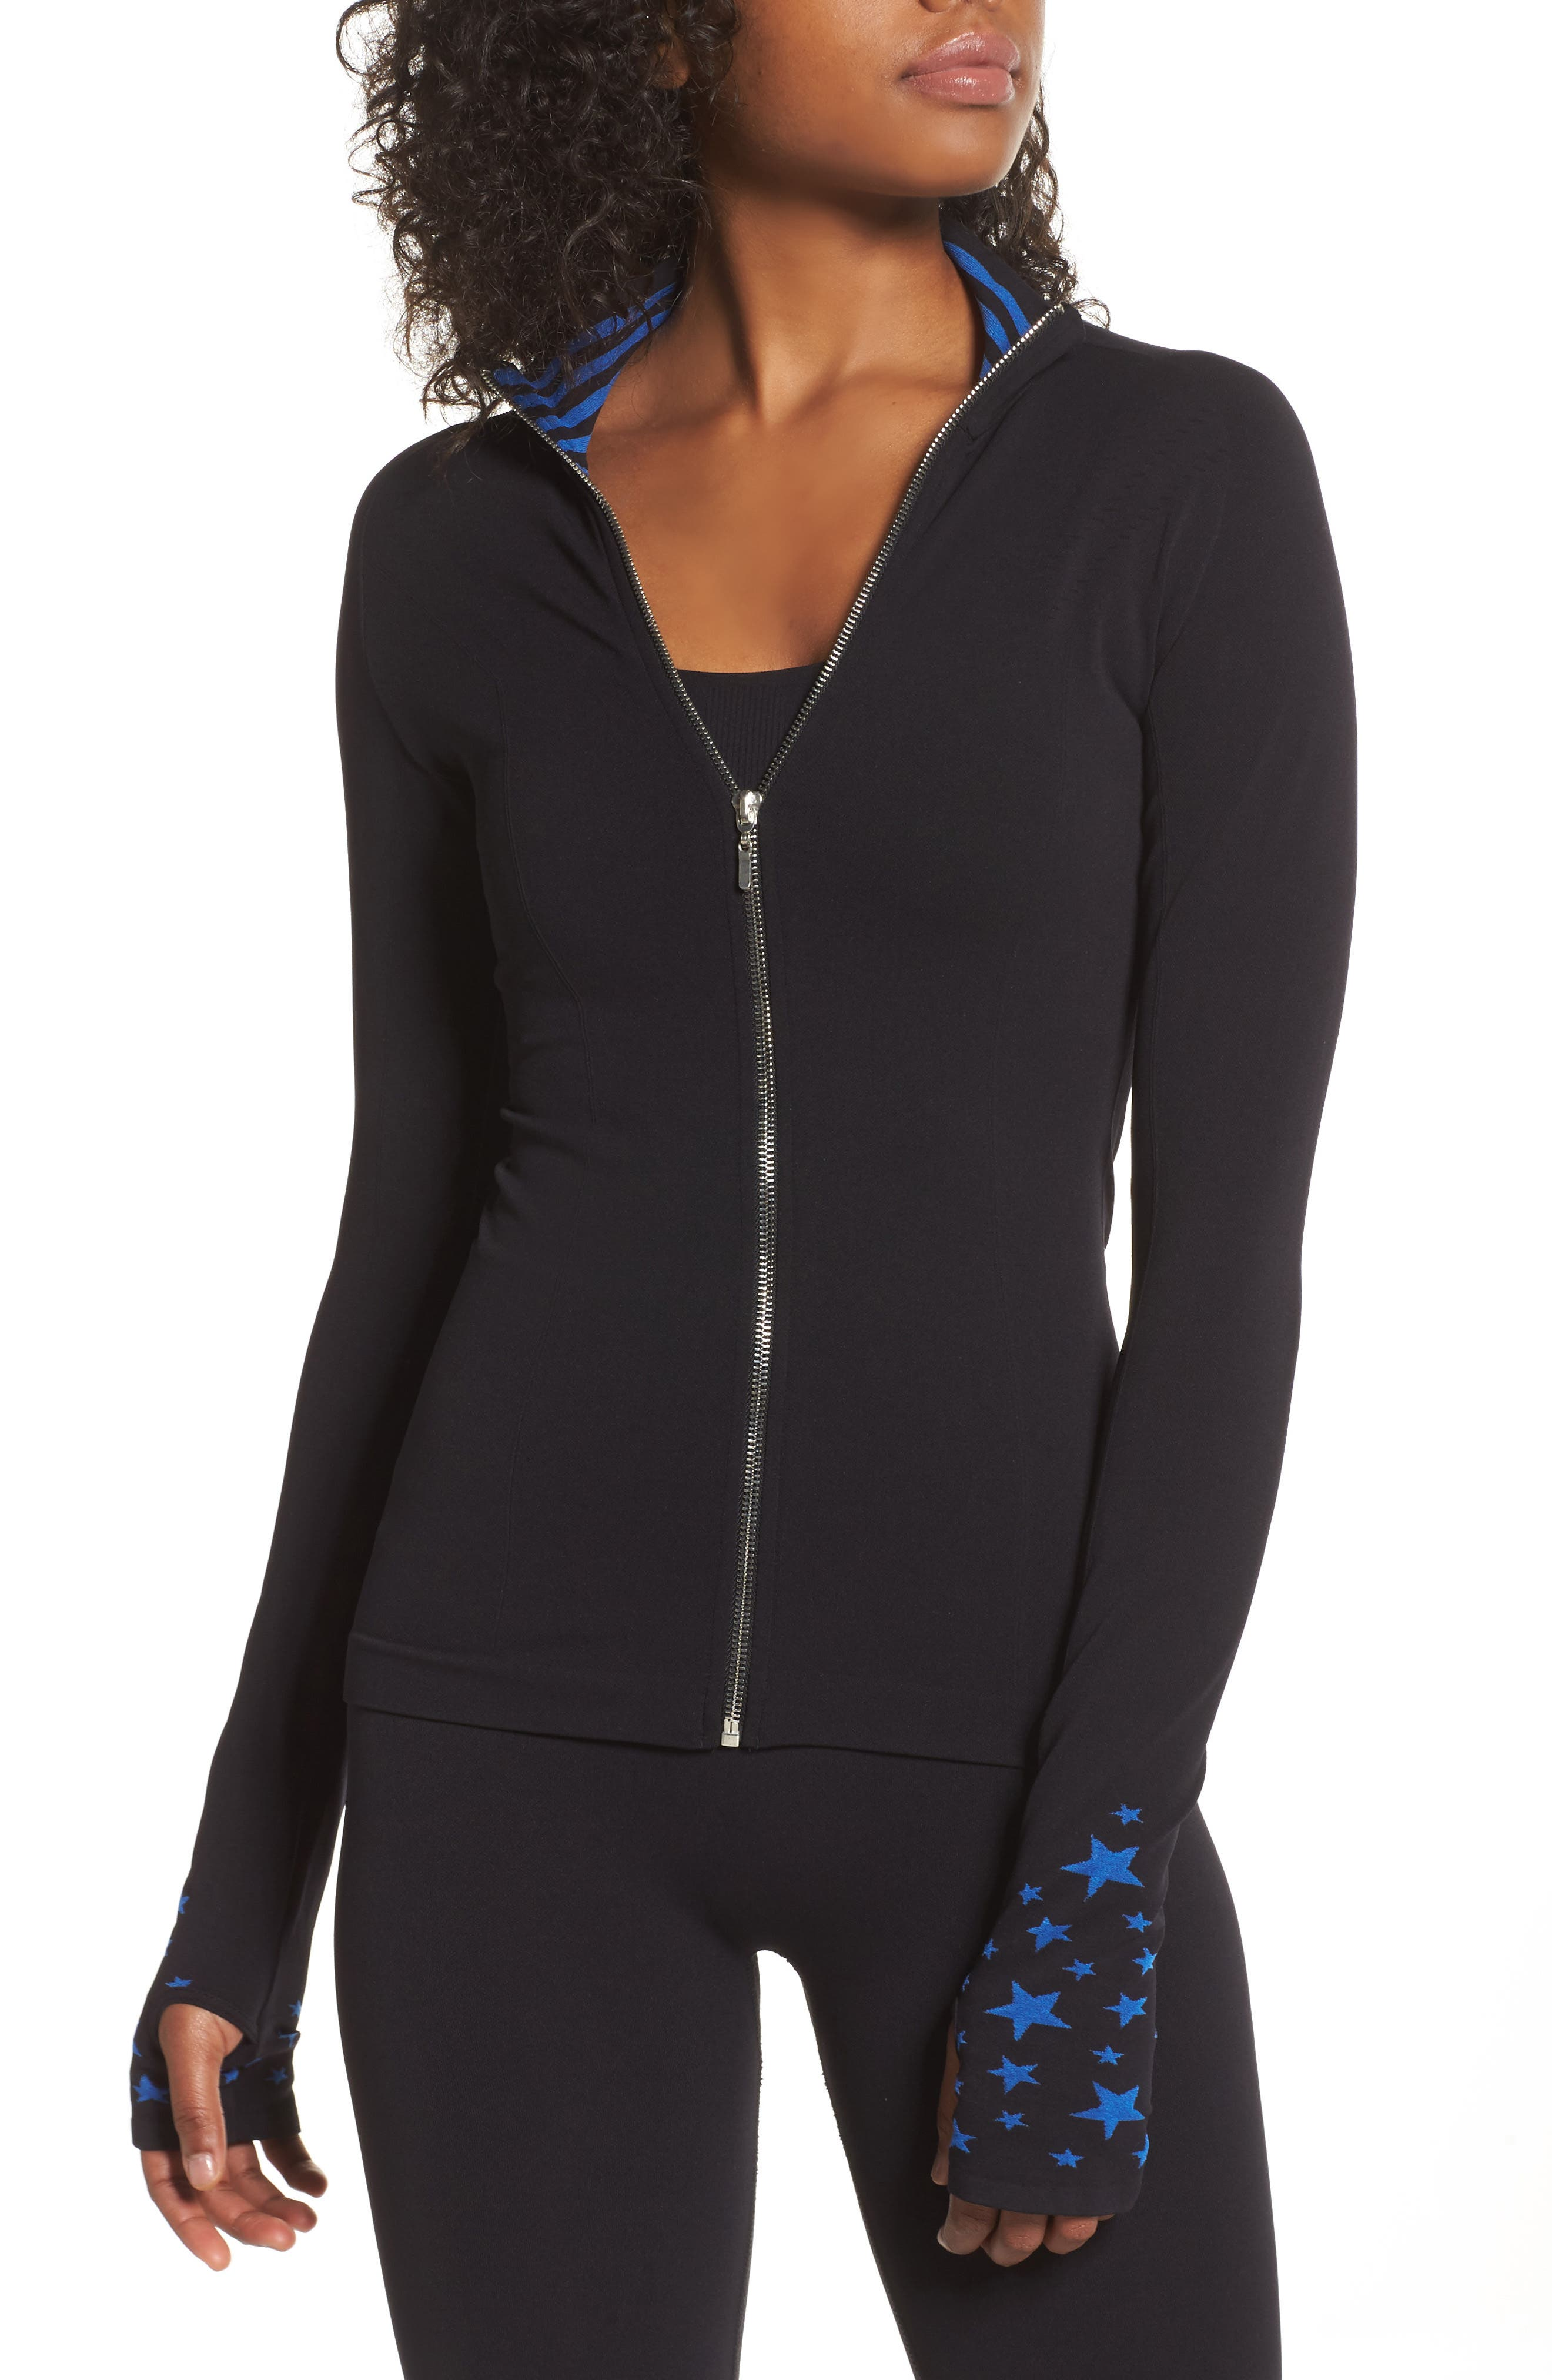 Main Image - BoomBoom Athletica Seamless Star Jacket